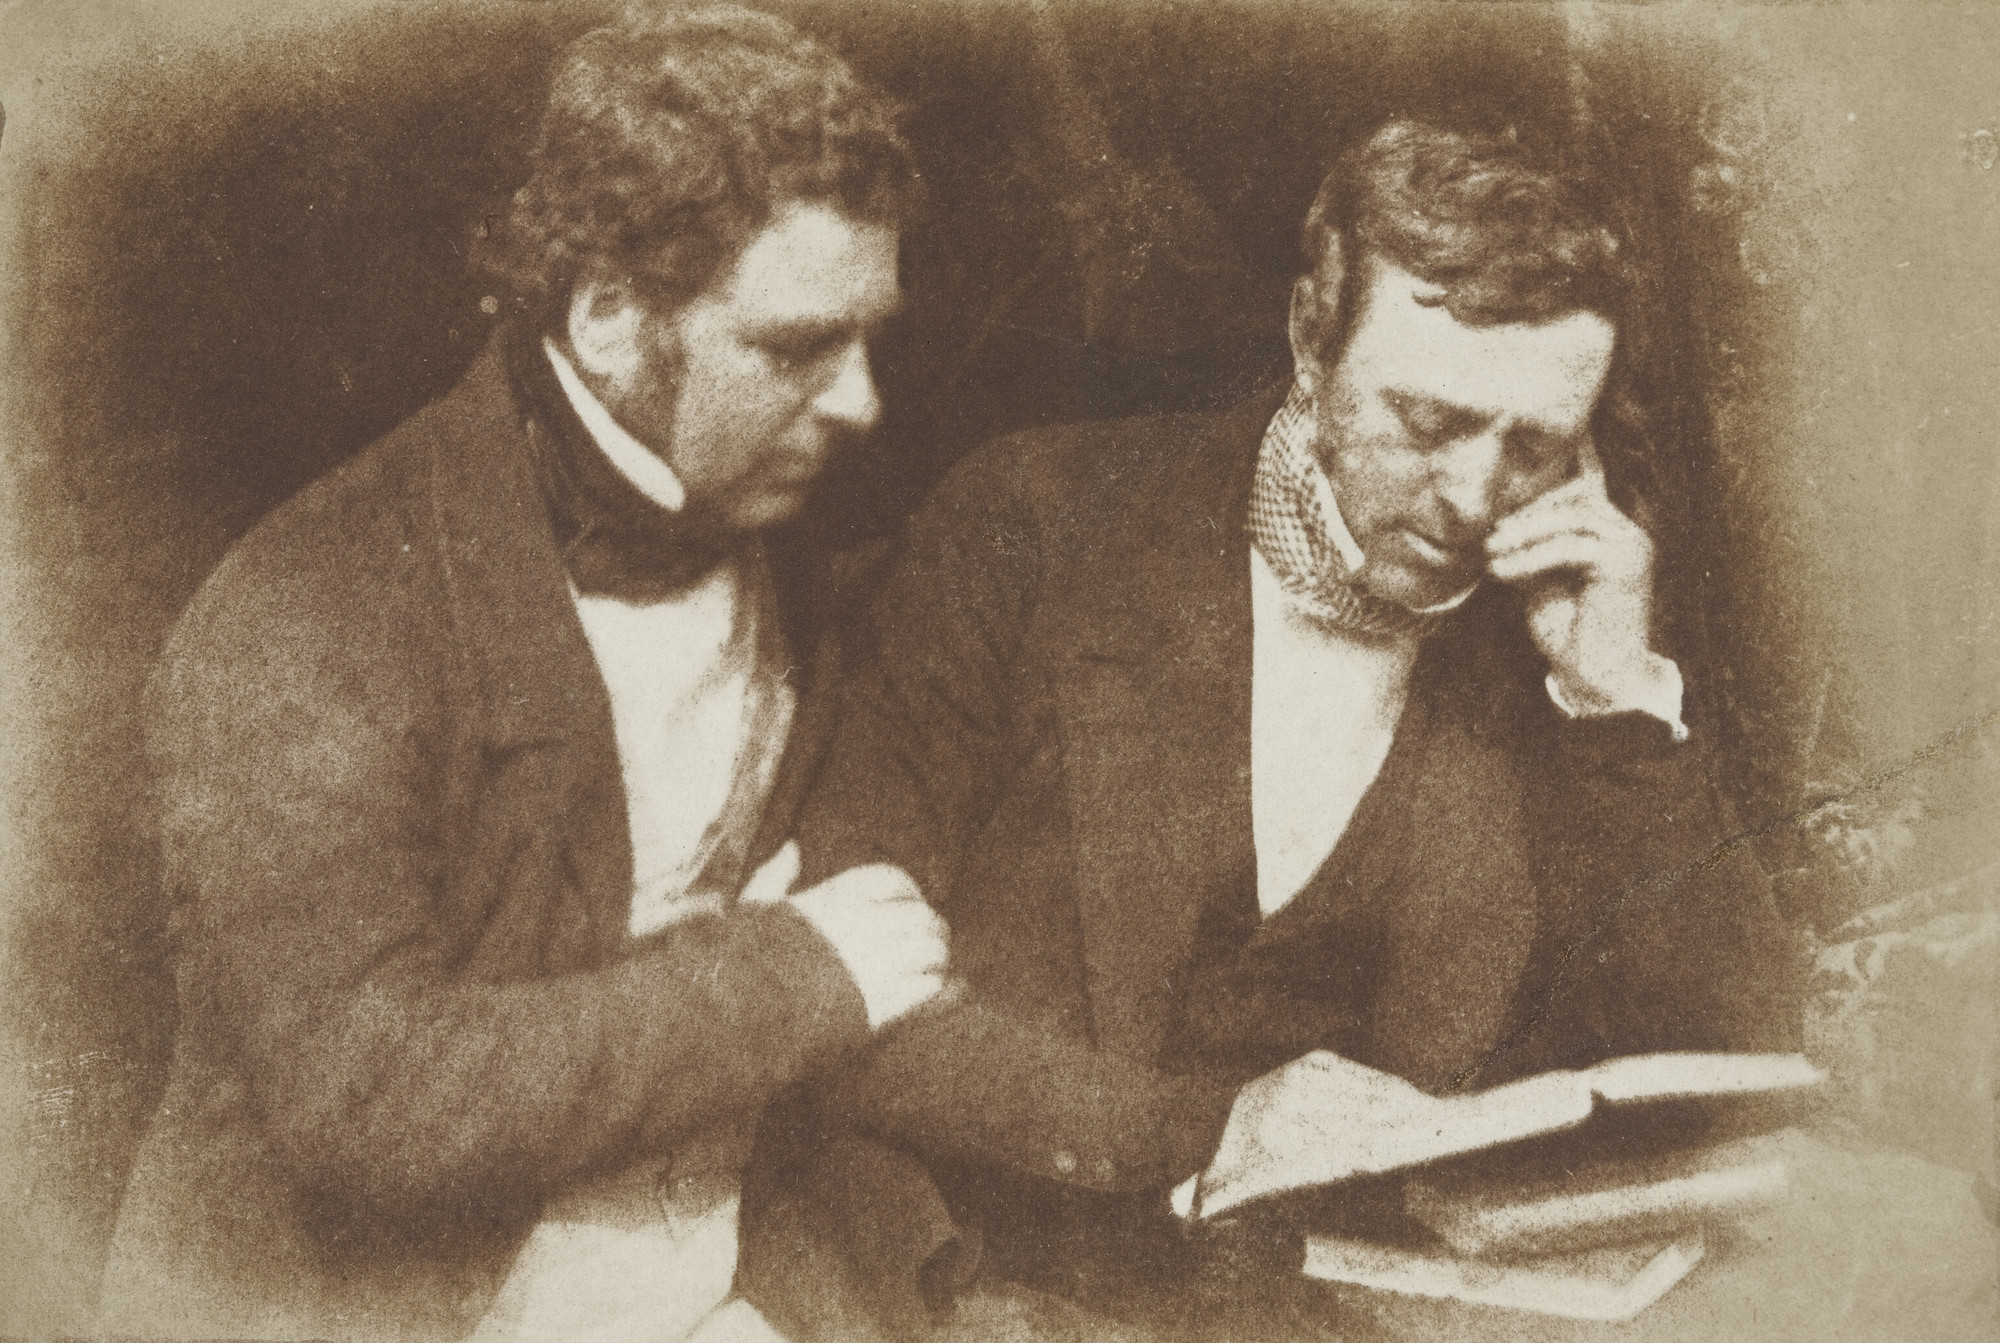 David Octavius Hill, Robert Adamson. Mr. W.S. Orr and Peter Fraser. c. 1841-48